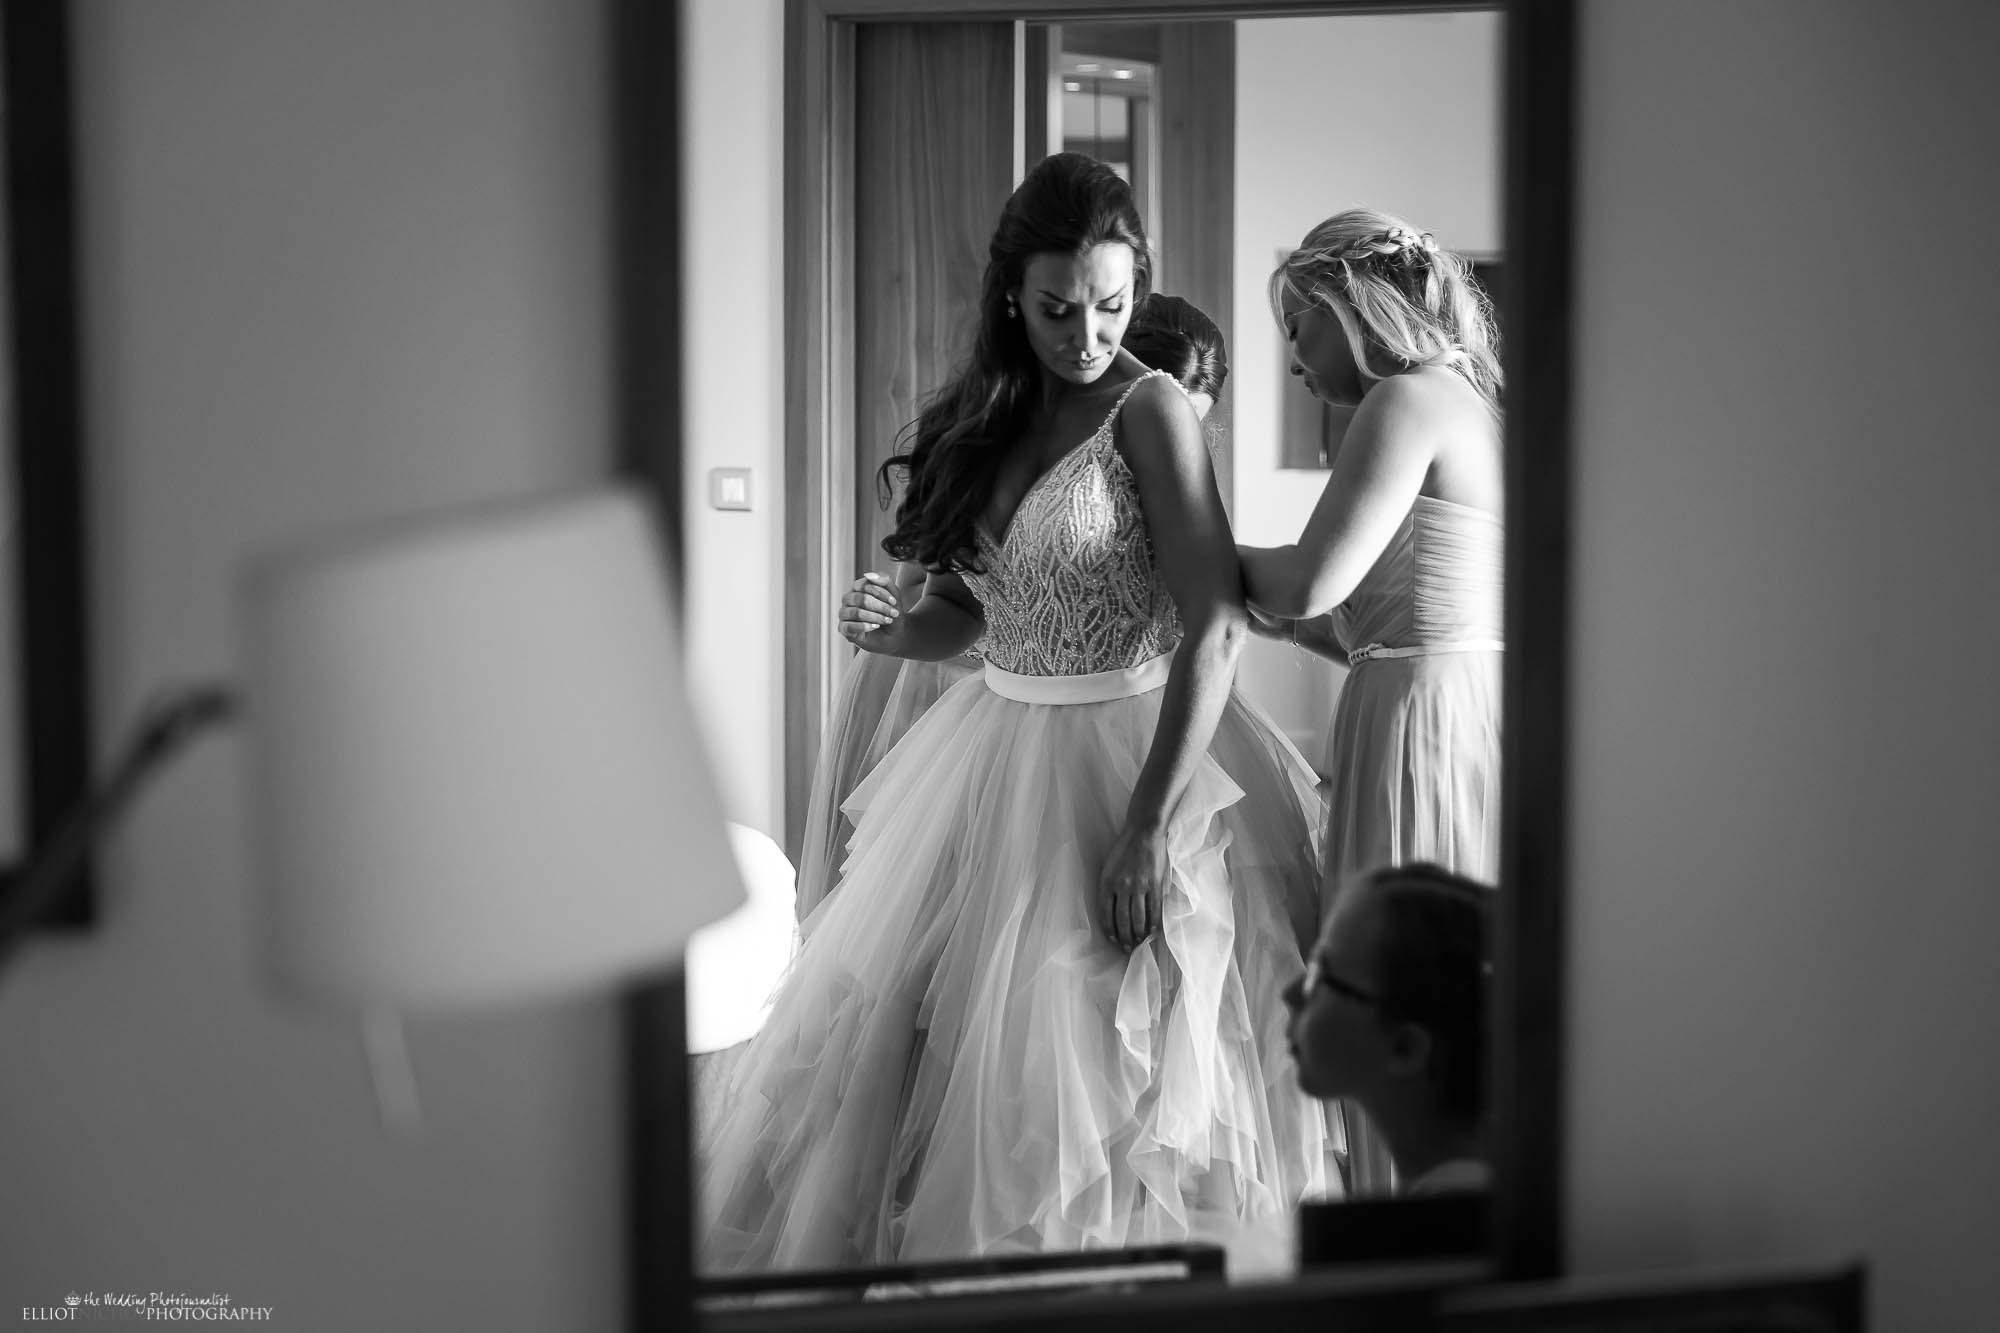 Bride gets into her wedding dress with the help of her bridesmaids.